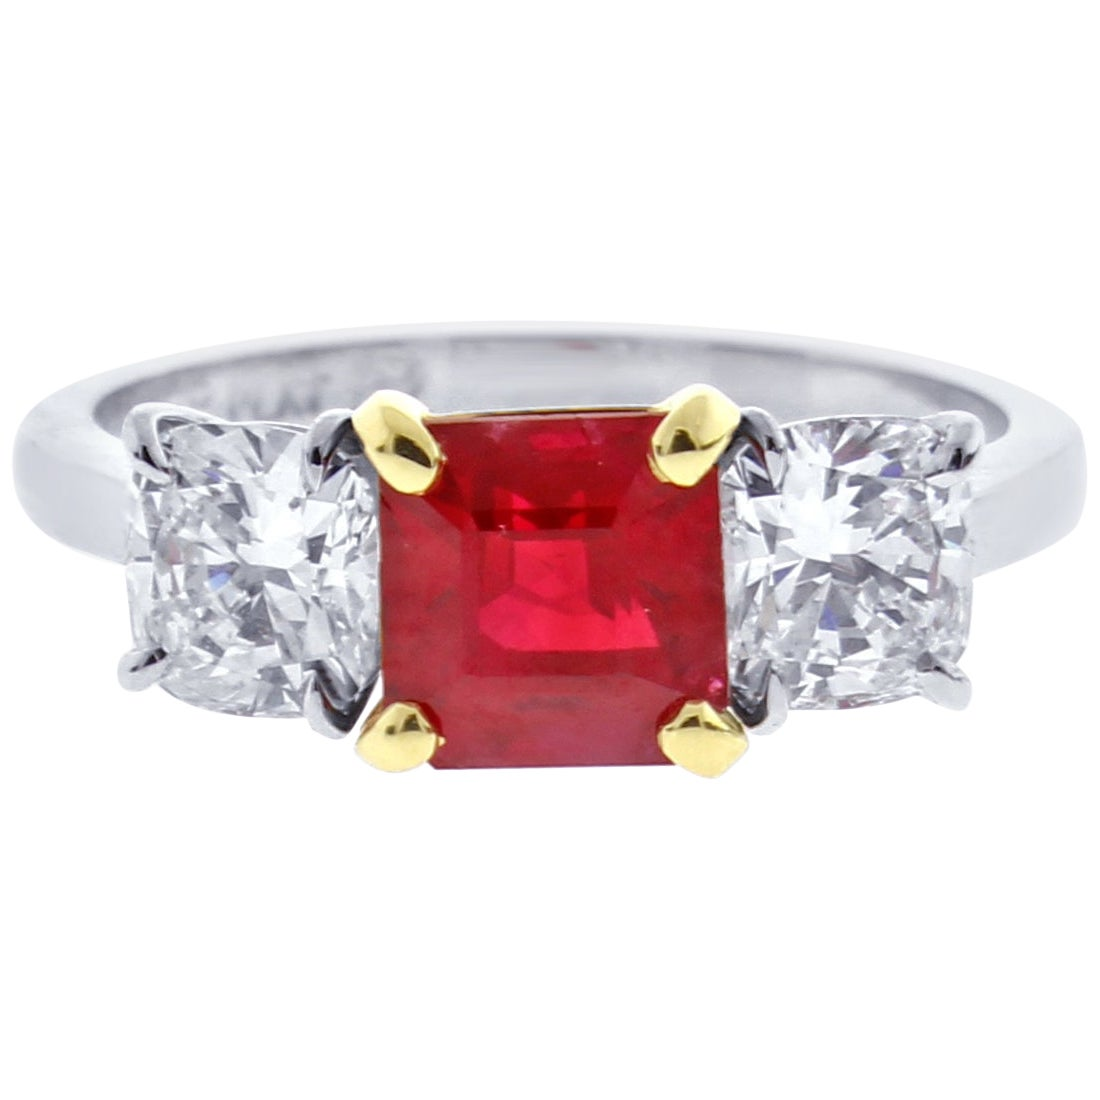 A.G.L. Burma Ruby and Diamond Thee-Stone Ring, by Pampillonia